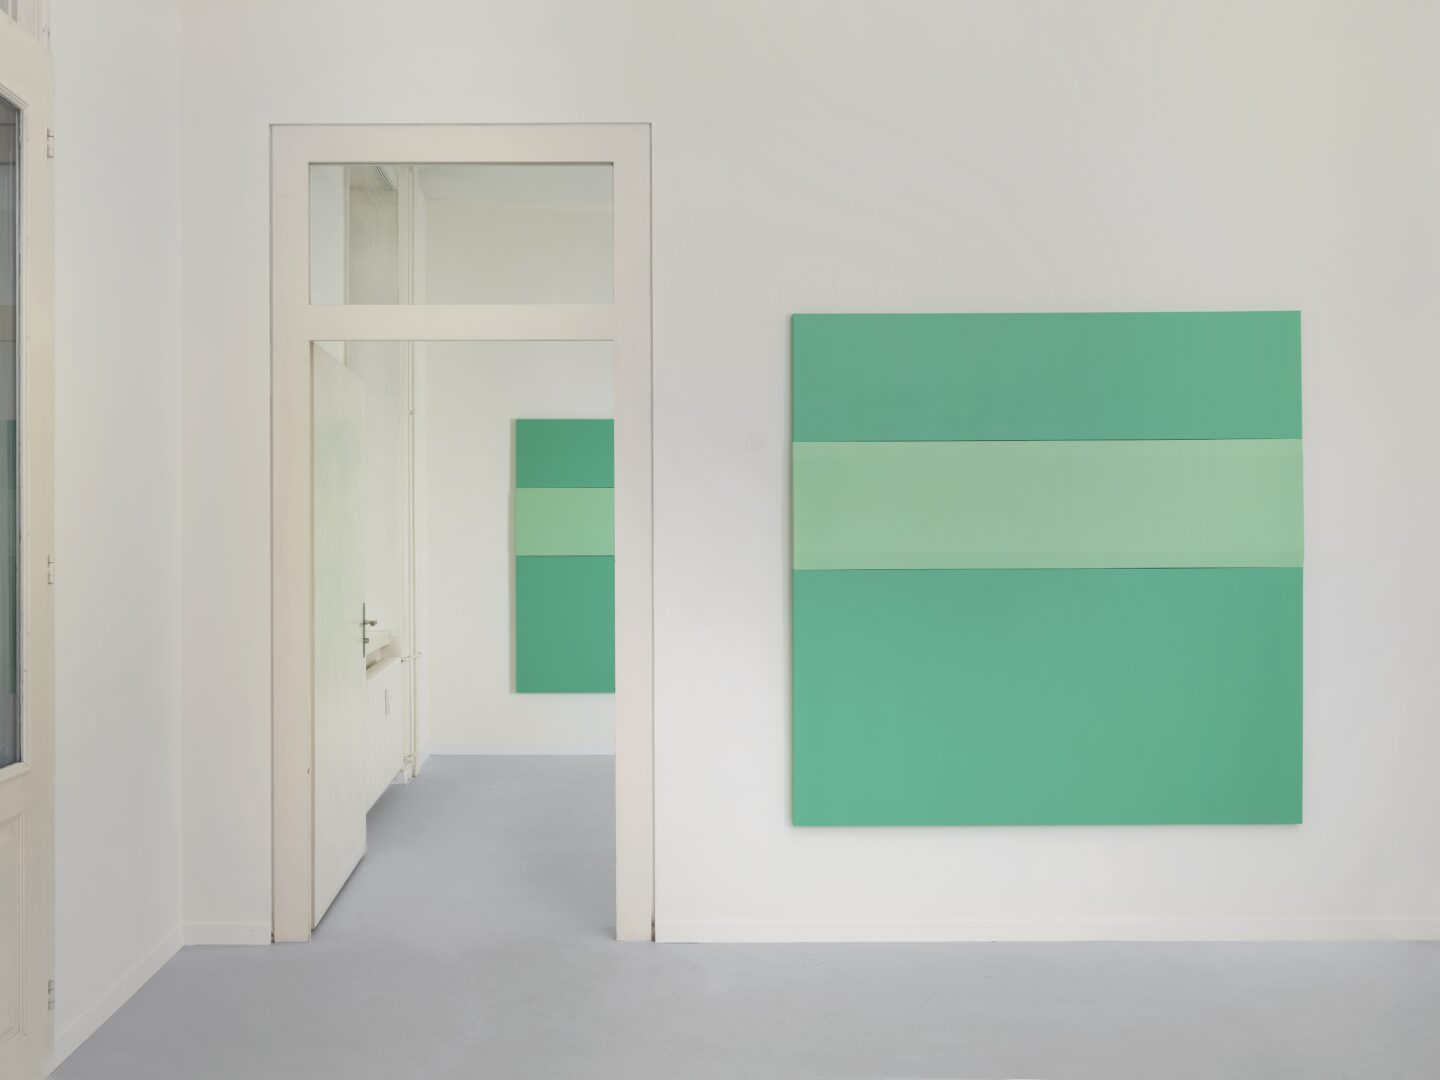 Exhibition View Frederic Gabioud Soloshow «Double or Nothing» at Lemoyne Project, Zurich, 2020 / Photo: Julien Gremaud / Courtesy: the artist and Lemoyne Project